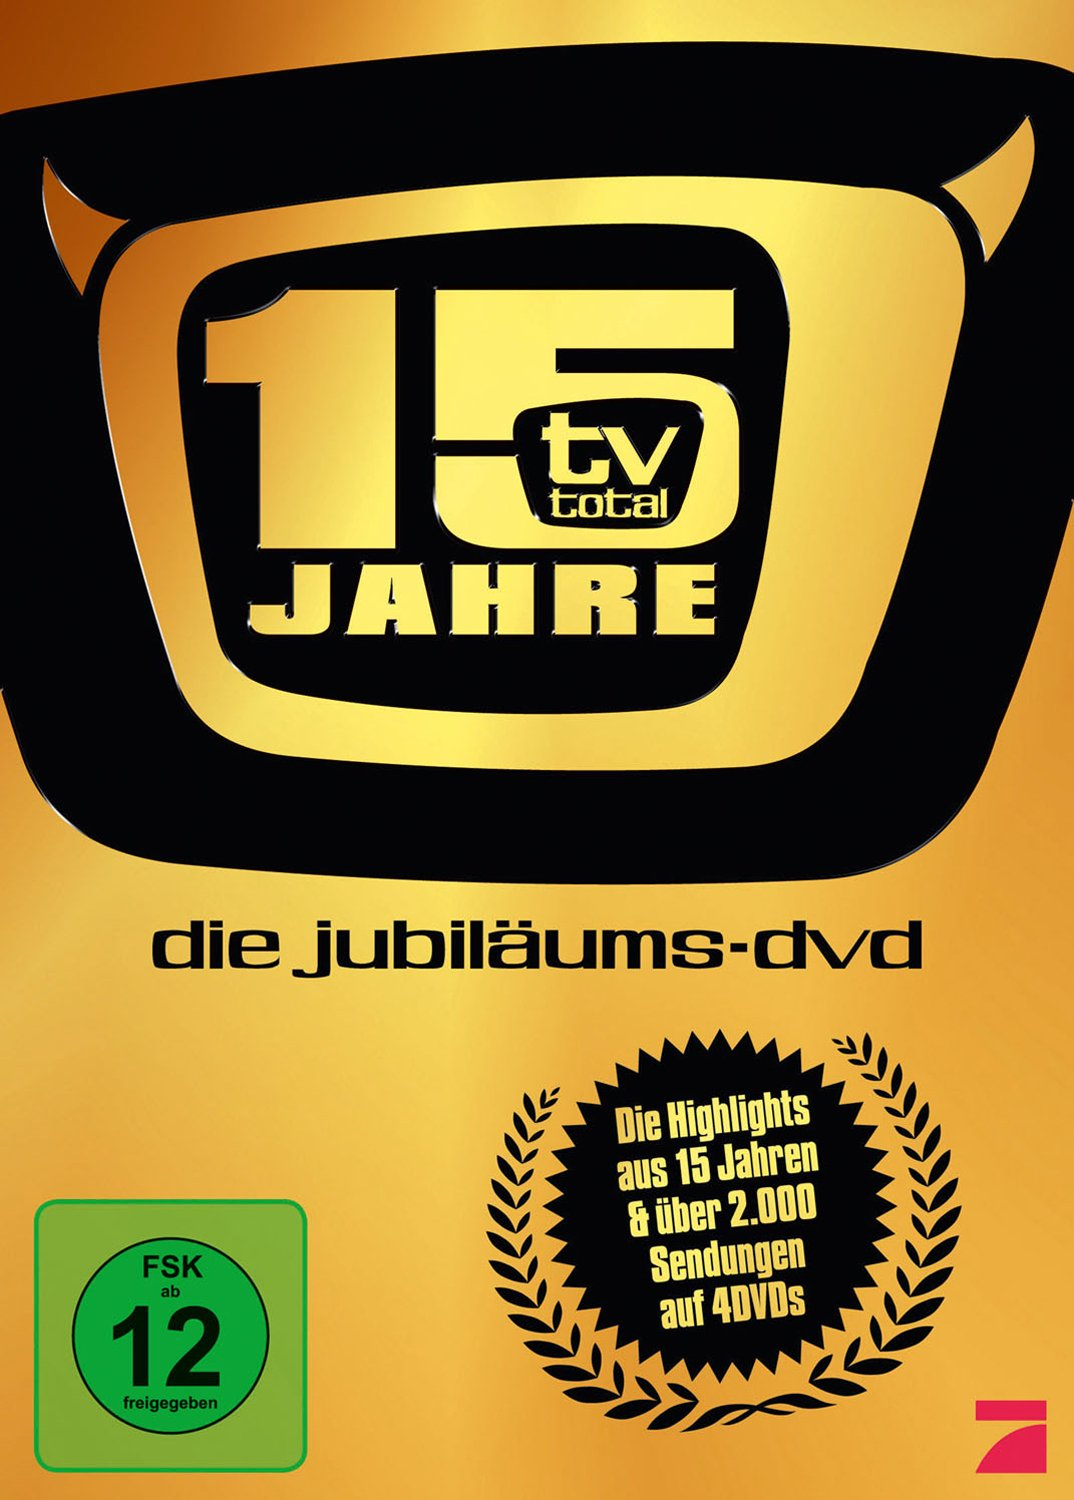 15 Jahre TV total